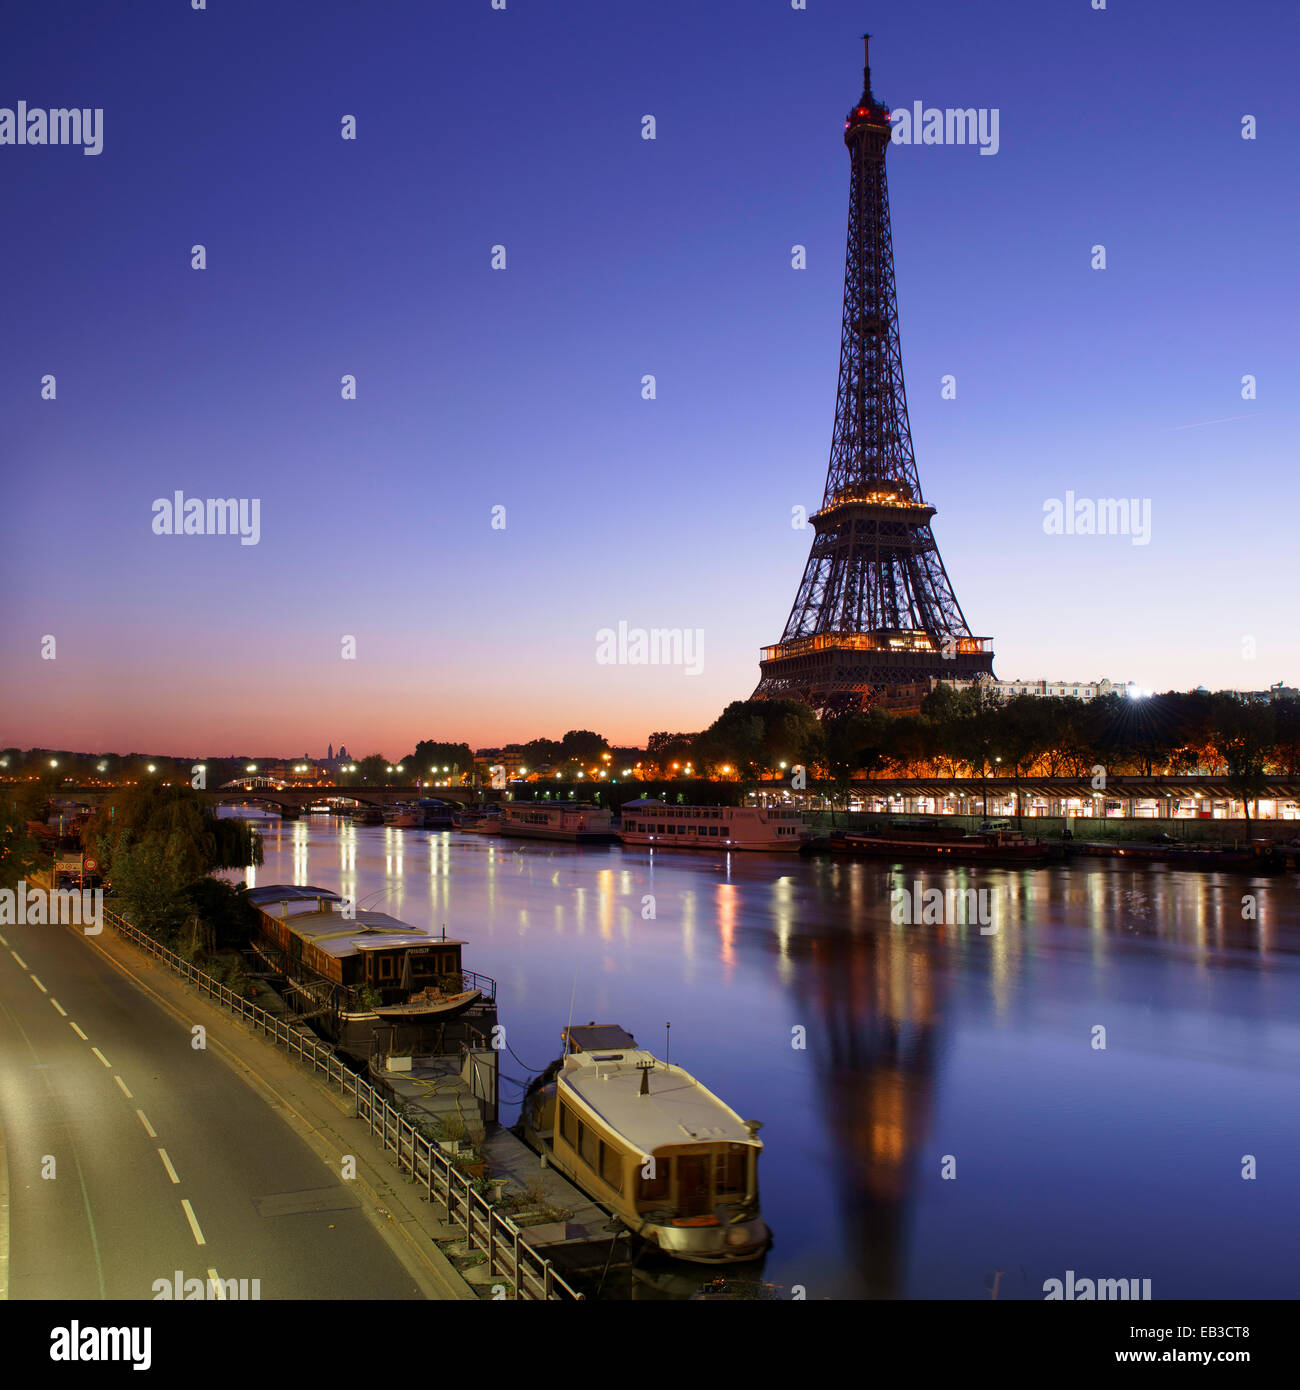 France, Paris, Eiffel Tower seen from across Seine River at sunrise - Stock Image